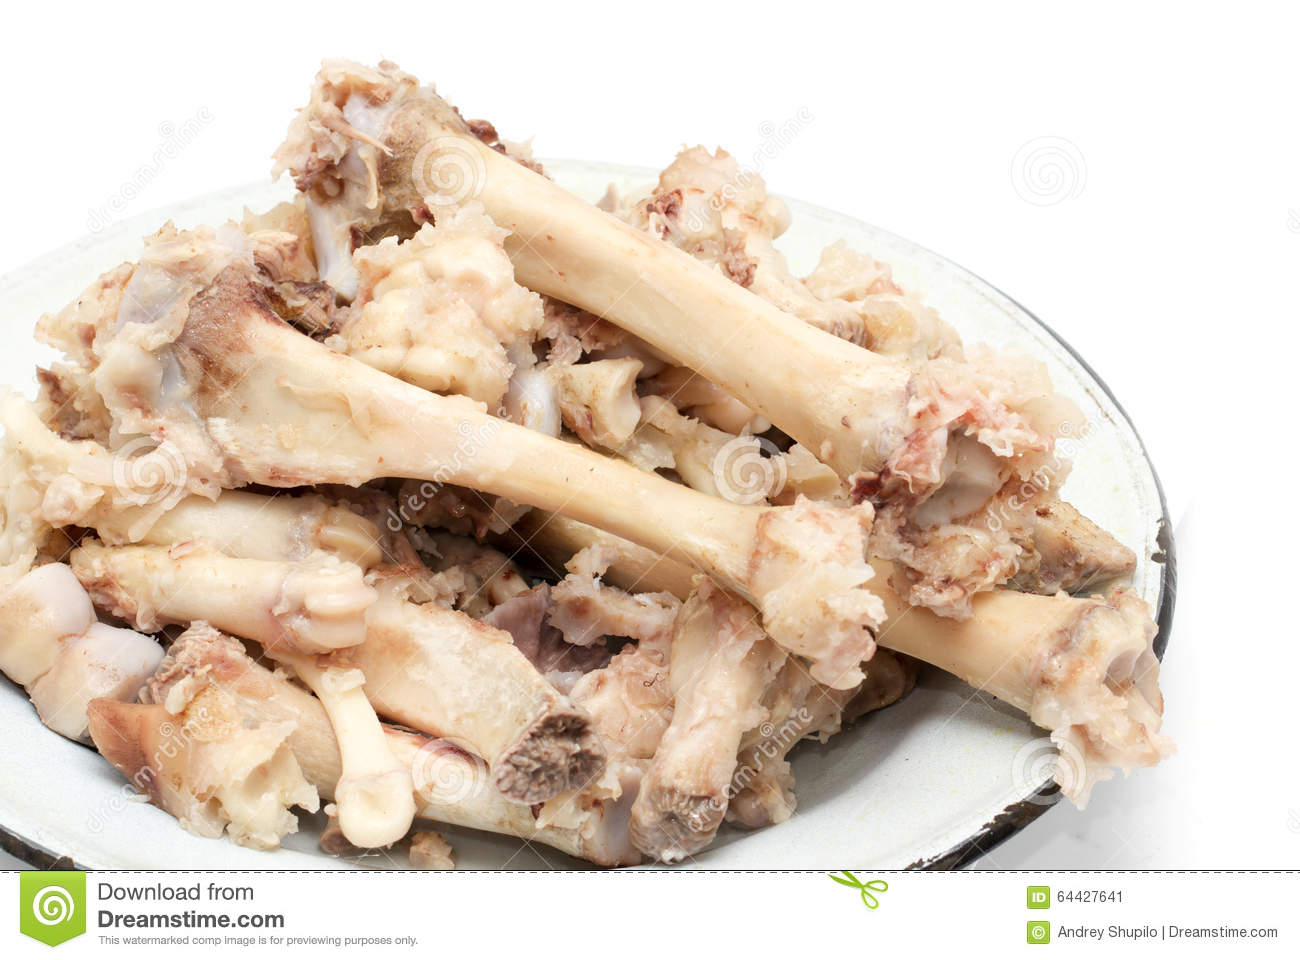 Can My Dog Eat Boiled Chicken Bones